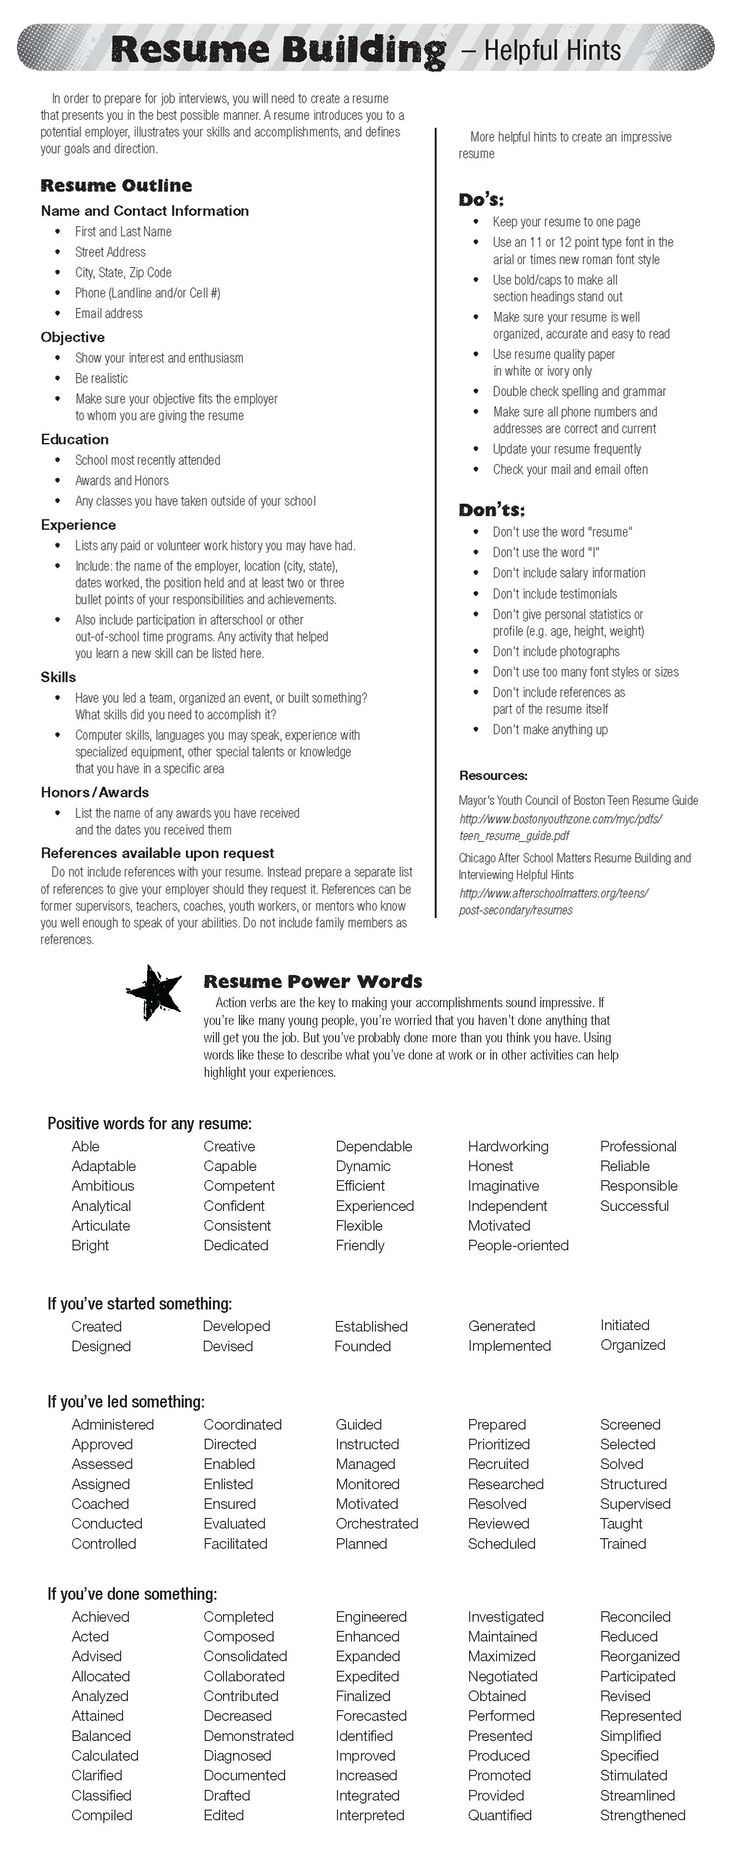 Opposenewapstandardsus  Terrific  Ideas About Resume On Pinterest  Cv Format Resume Cv And  With Magnificent  Ideas About Resume On Pinterest  Cv Format Resume Cv And Resume Templates With Delightful Human Services Resume Also Best Resume Cover Letter In Addition Create A Free Resume Online And How To Prepare Resume As Well As Manufacturing Engineer Resume Additionally Professional Resume Layout From Pinterestcom With Opposenewapstandardsus  Magnificent  Ideas About Resume On Pinterest  Cv Format Resume Cv And  With Delightful  Ideas About Resume On Pinterest  Cv Format Resume Cv And Resume Templates And Terrific Human Services Resume Also Best Resume Cover Letter In Addition Create A Free Resume Online From Pinterestcom